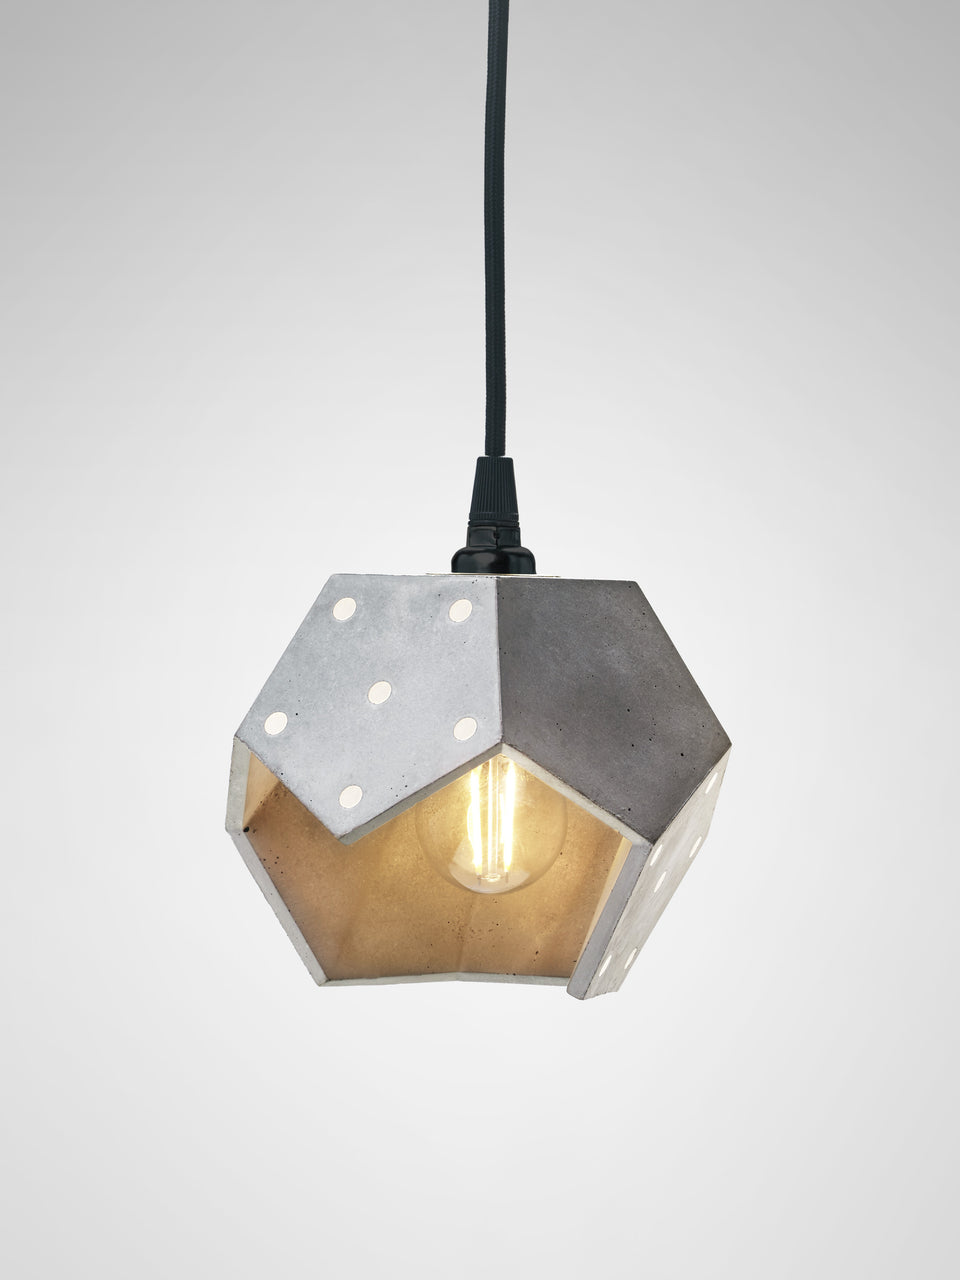 Basic Twelve Solo pendant lamp